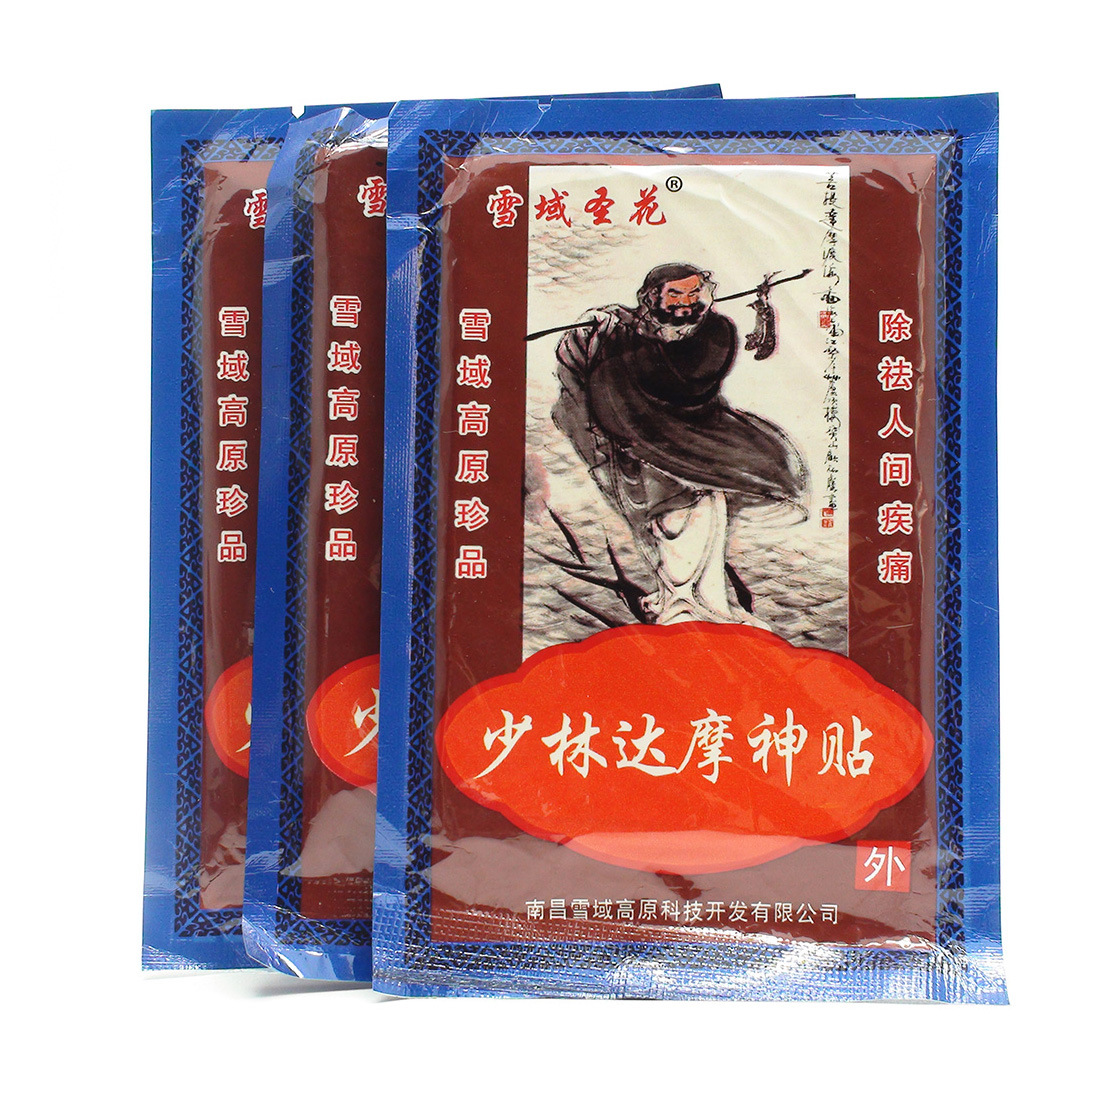 16Pcs/2Bags Chinese Shaolin Herbal Medicine Knee Pain Relief Adhesive Plasters/Patches Joint Rheumatism Pain Relieving JMN066